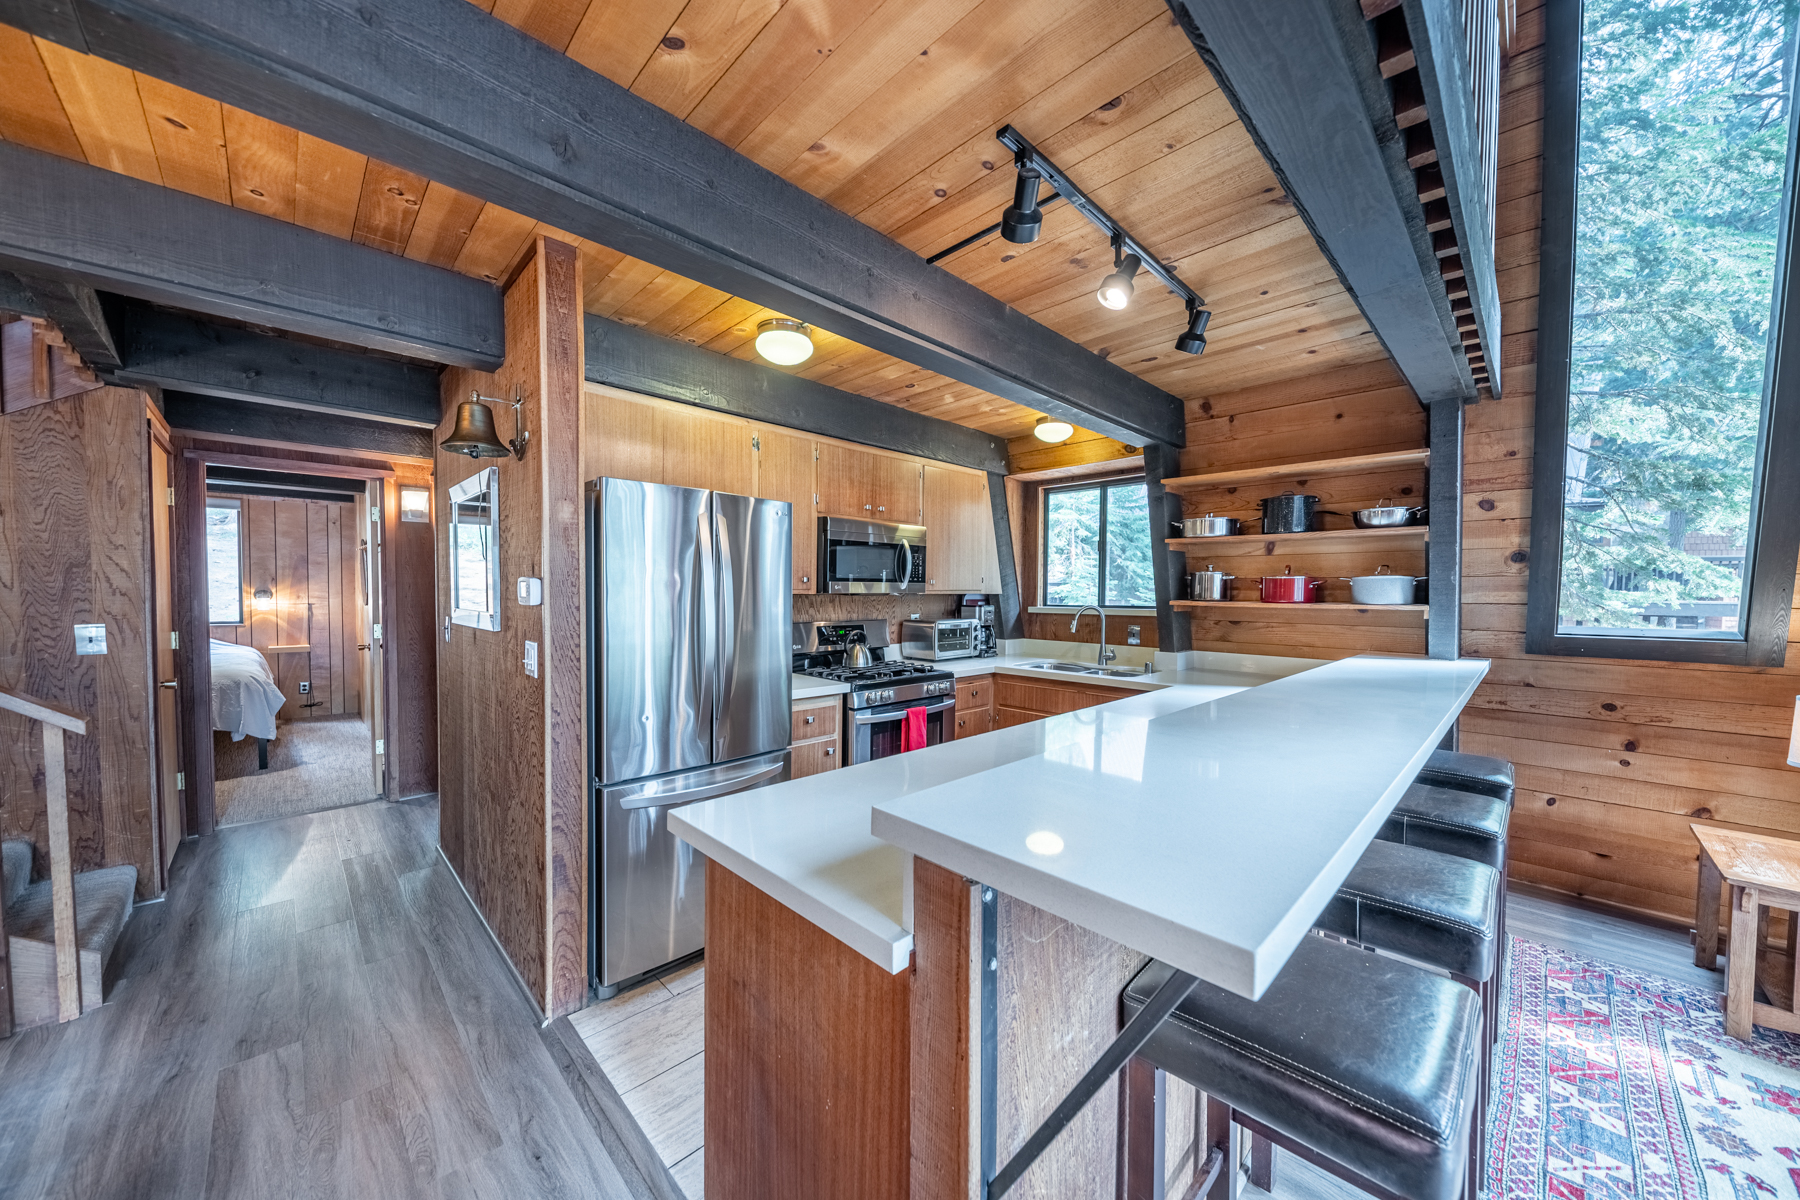 Additional photo for property listing at Classic Northstar Chalet 1042 Martis Landing Truckee, California 96161 United States